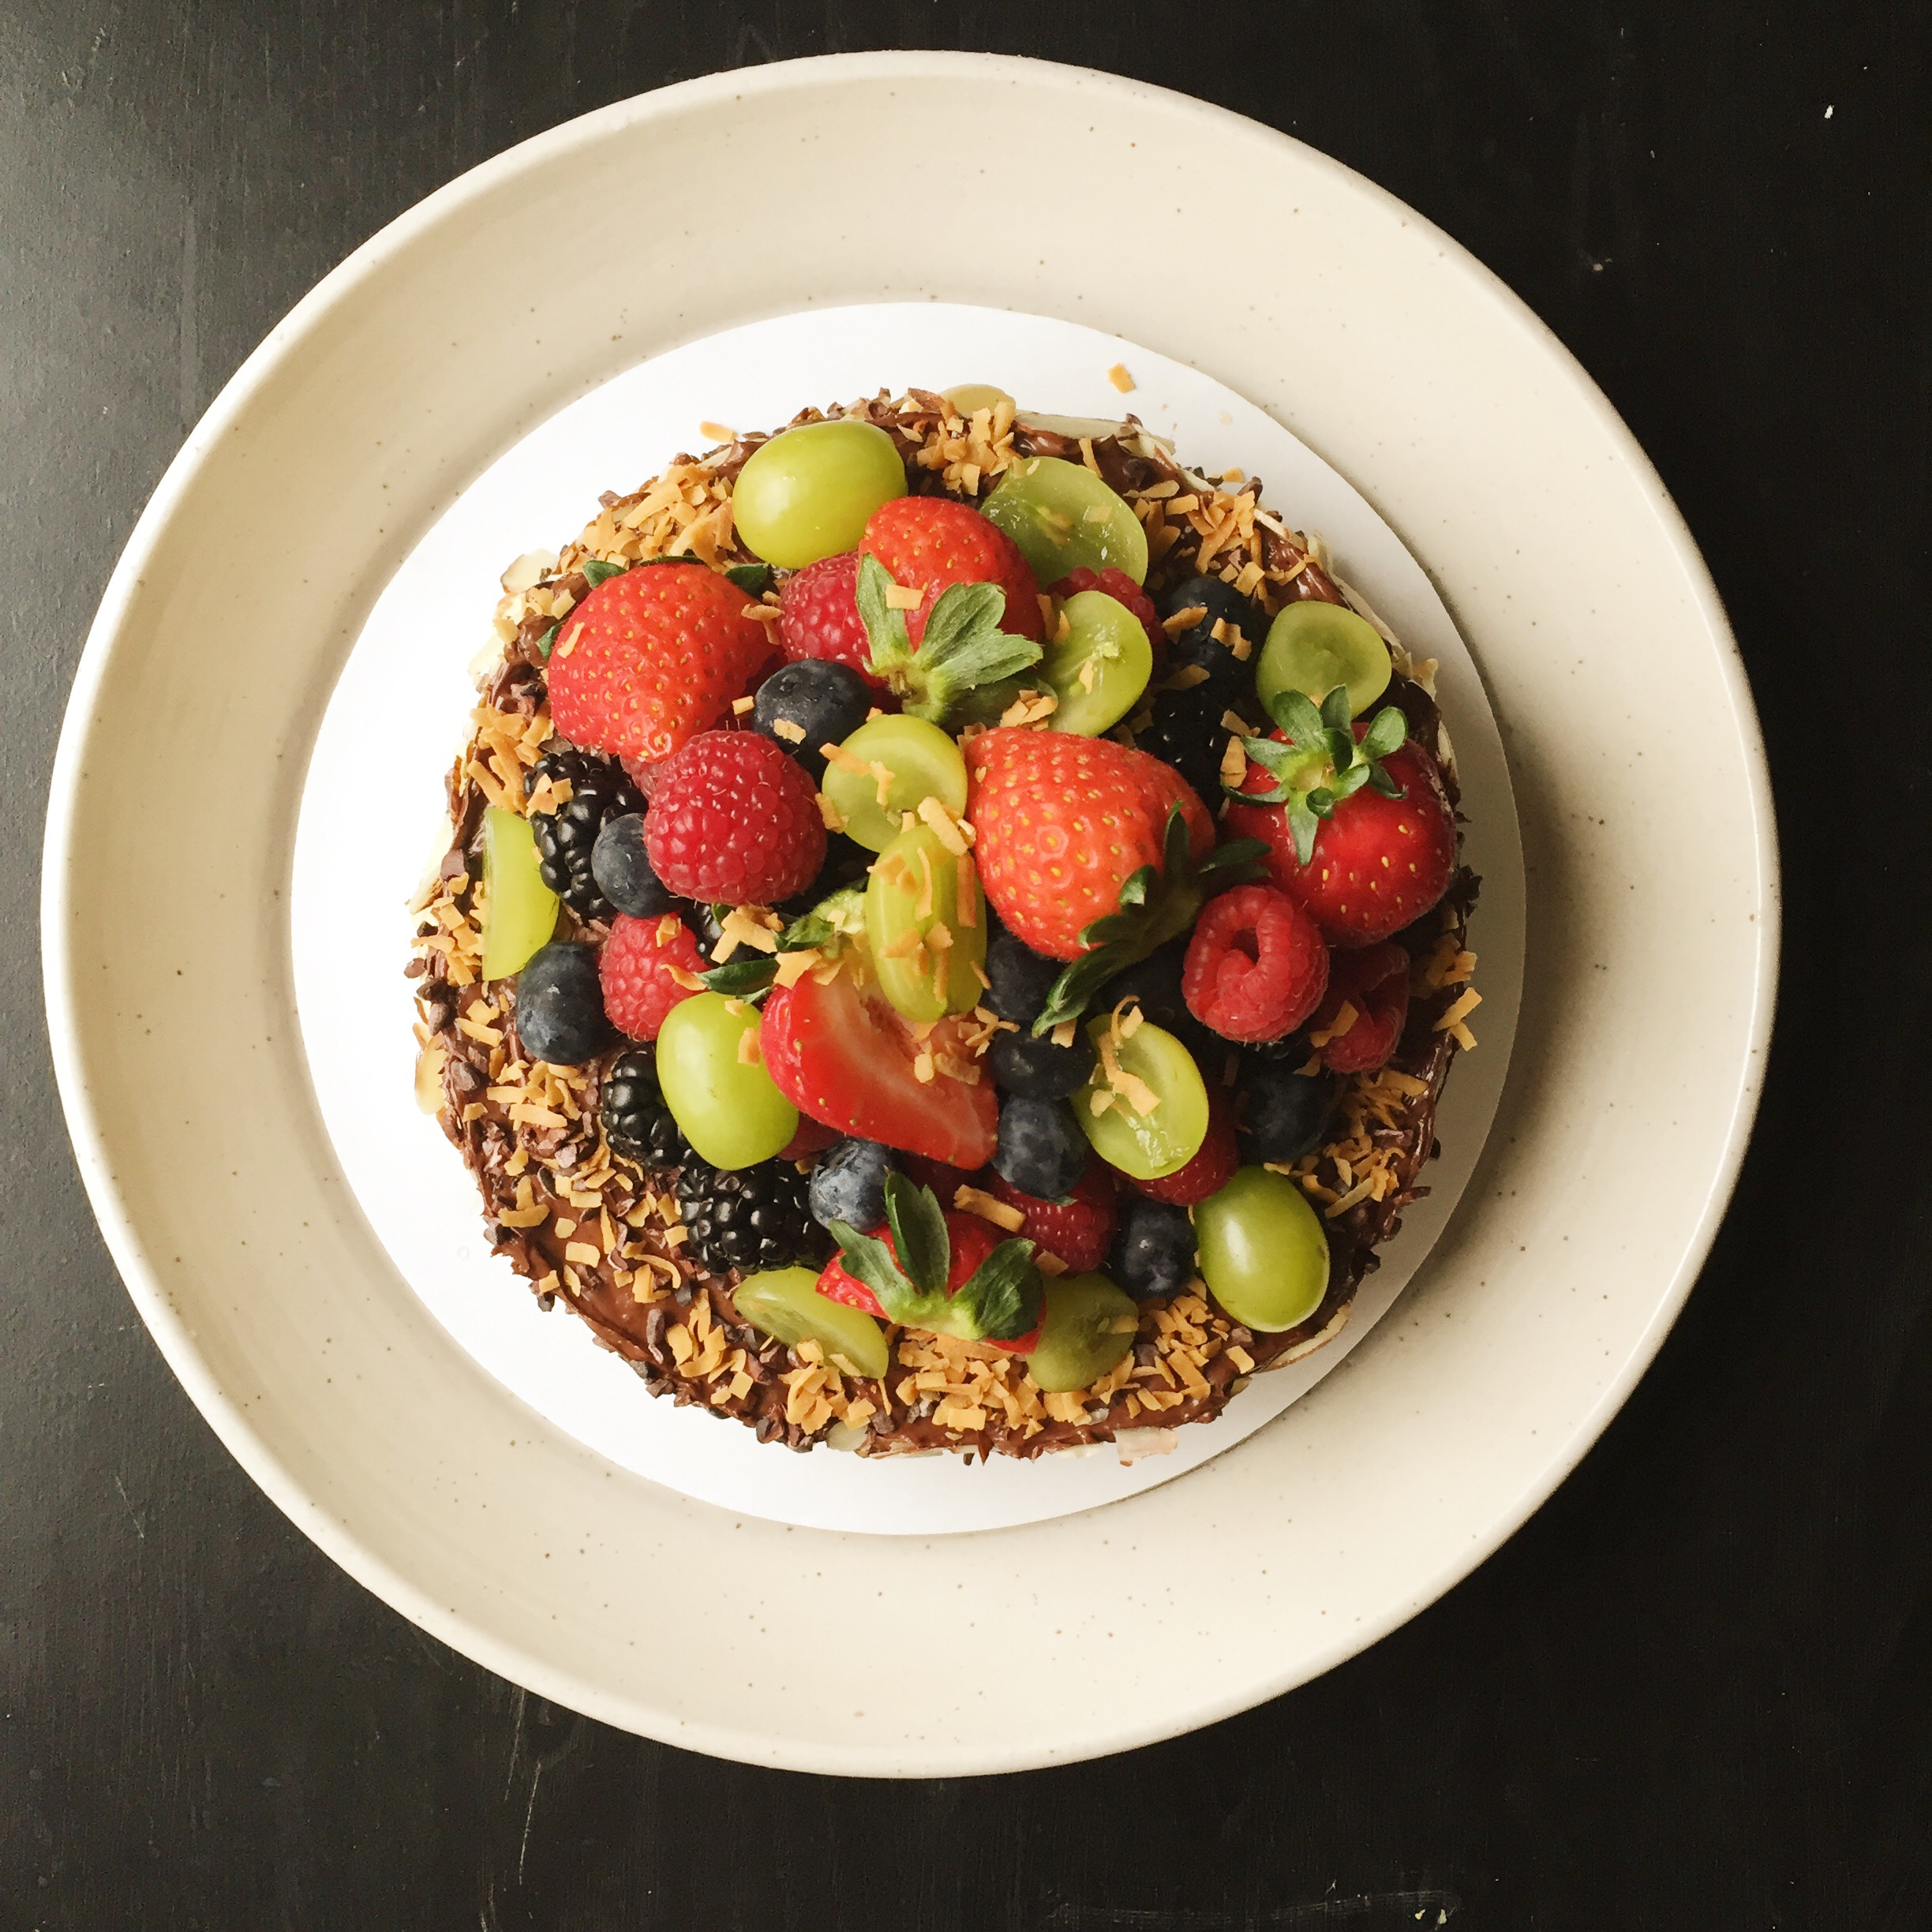 Paleo Chocolate Cake adorned with fruit, toasted coconut, almonds, and cacao nibs.